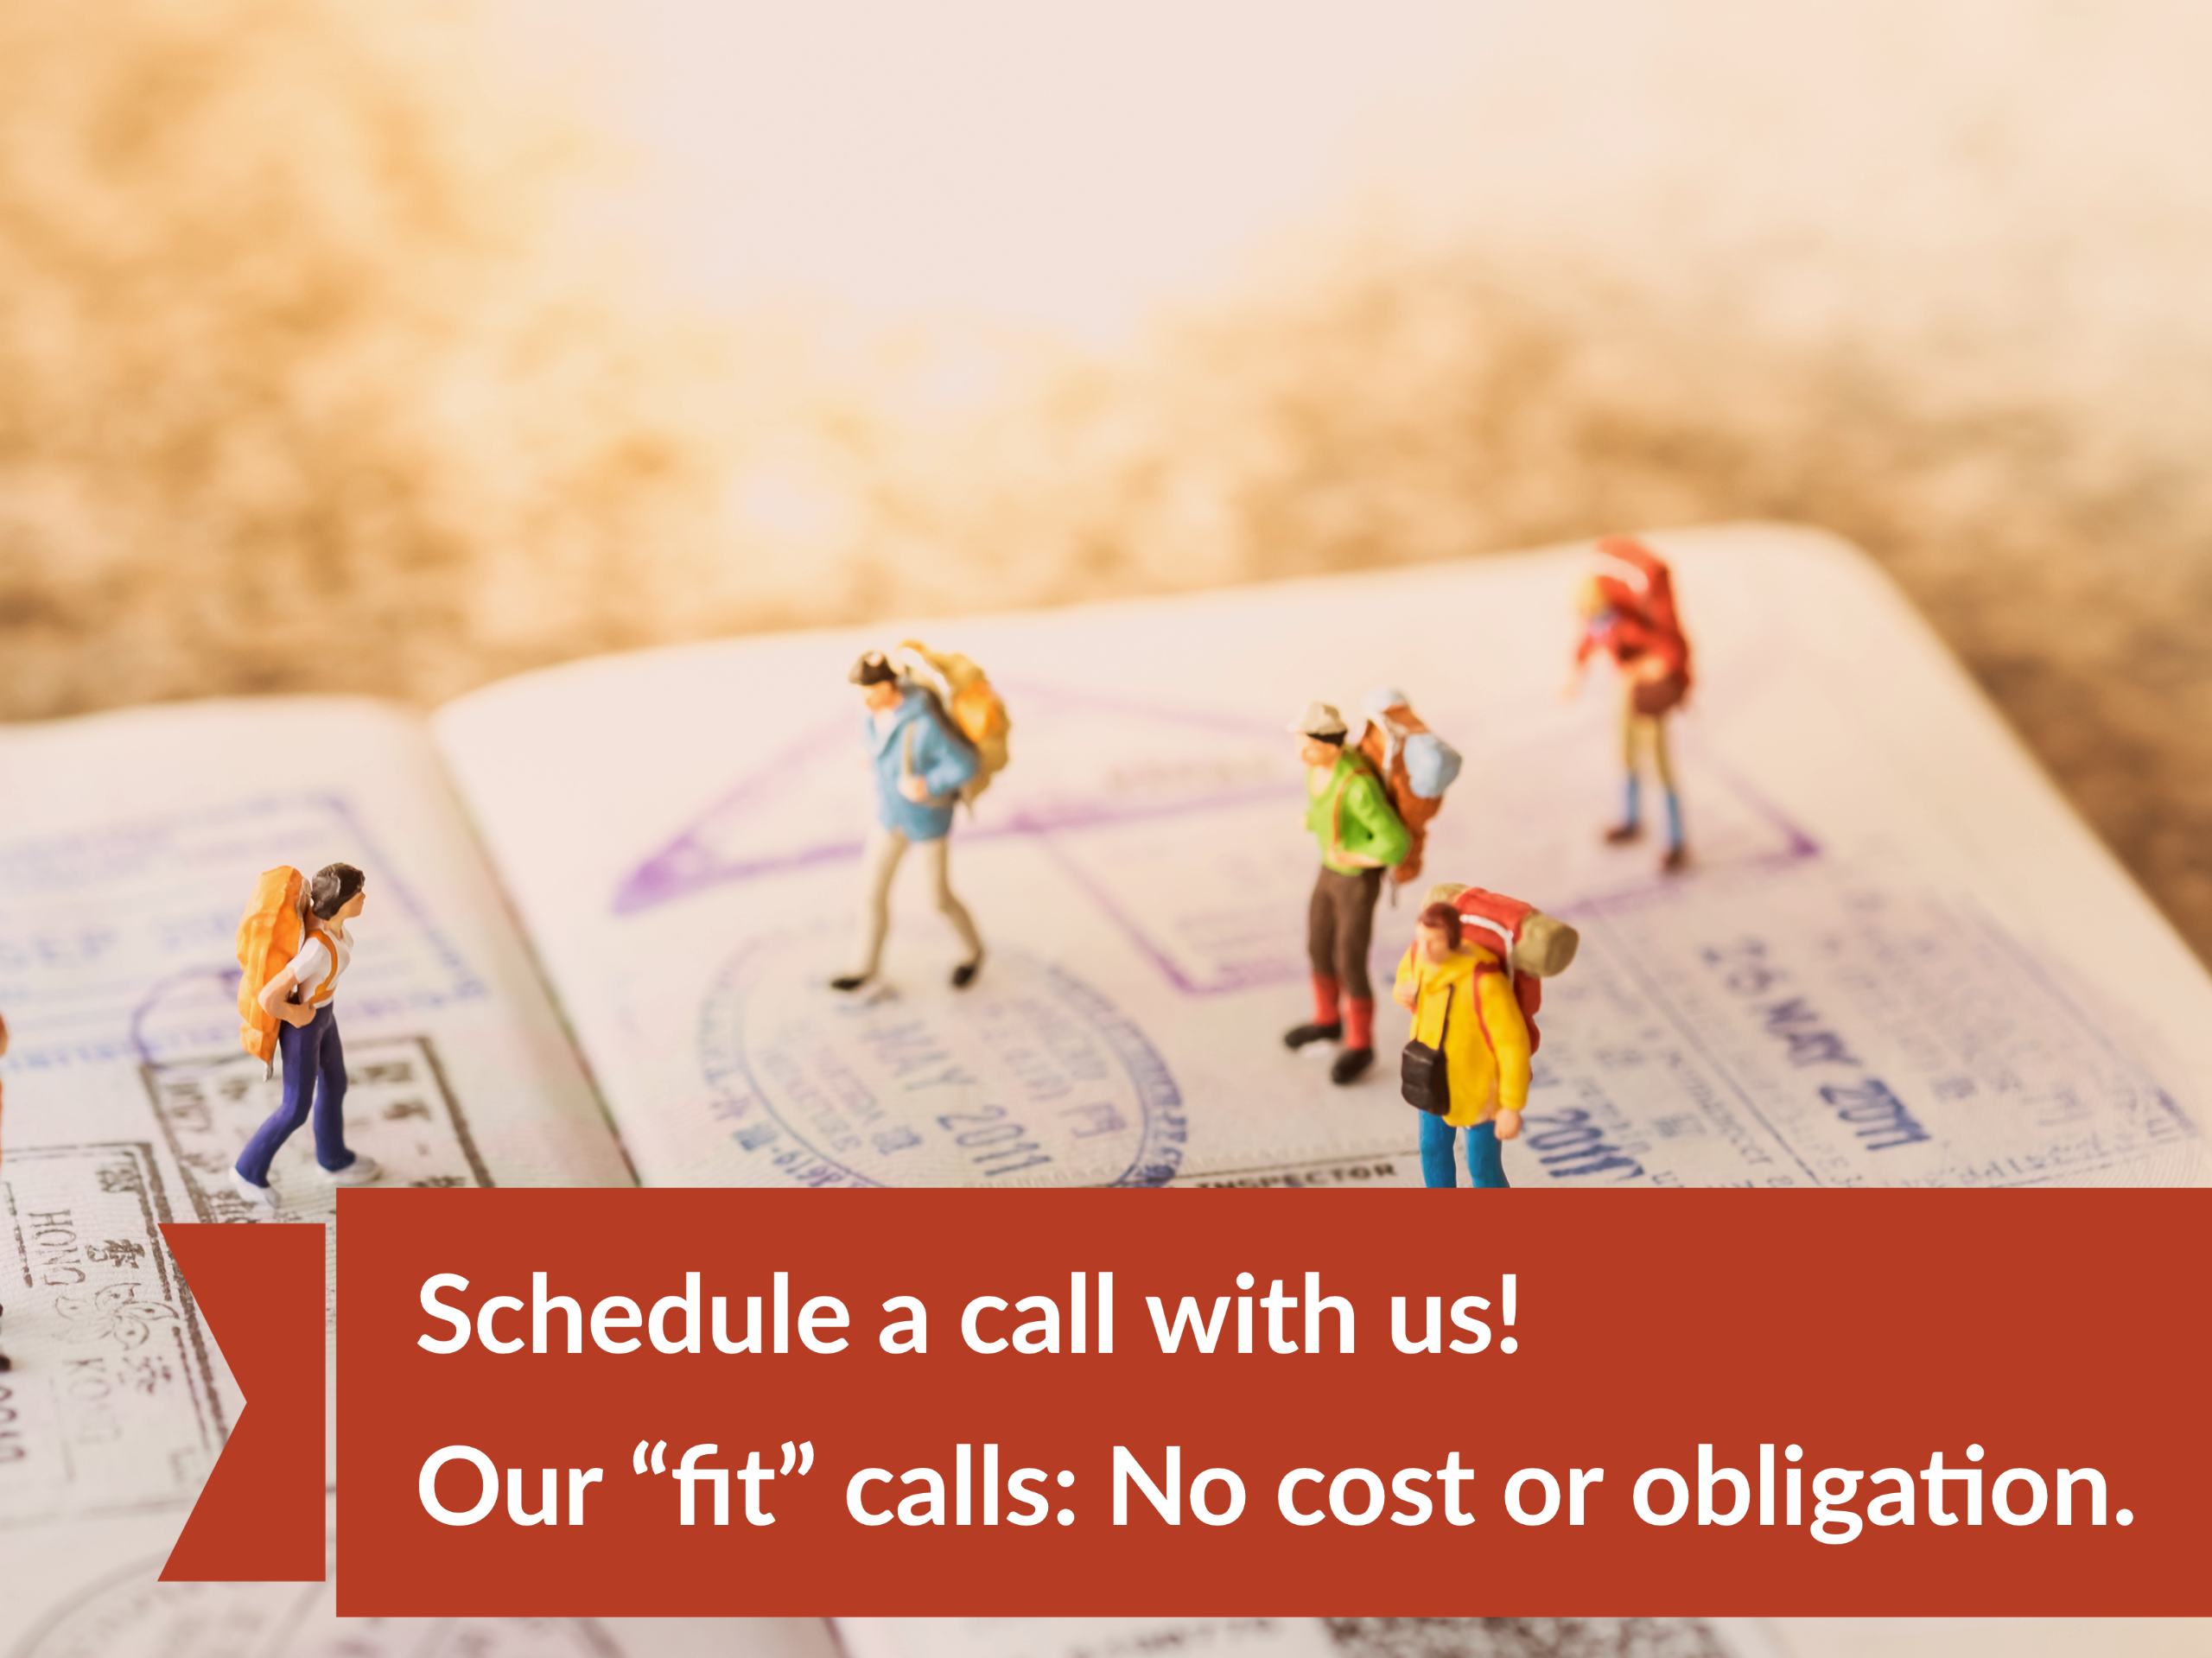 """Schedule a call with us! Our """"fit"""" calls carry no cost or obligation."""